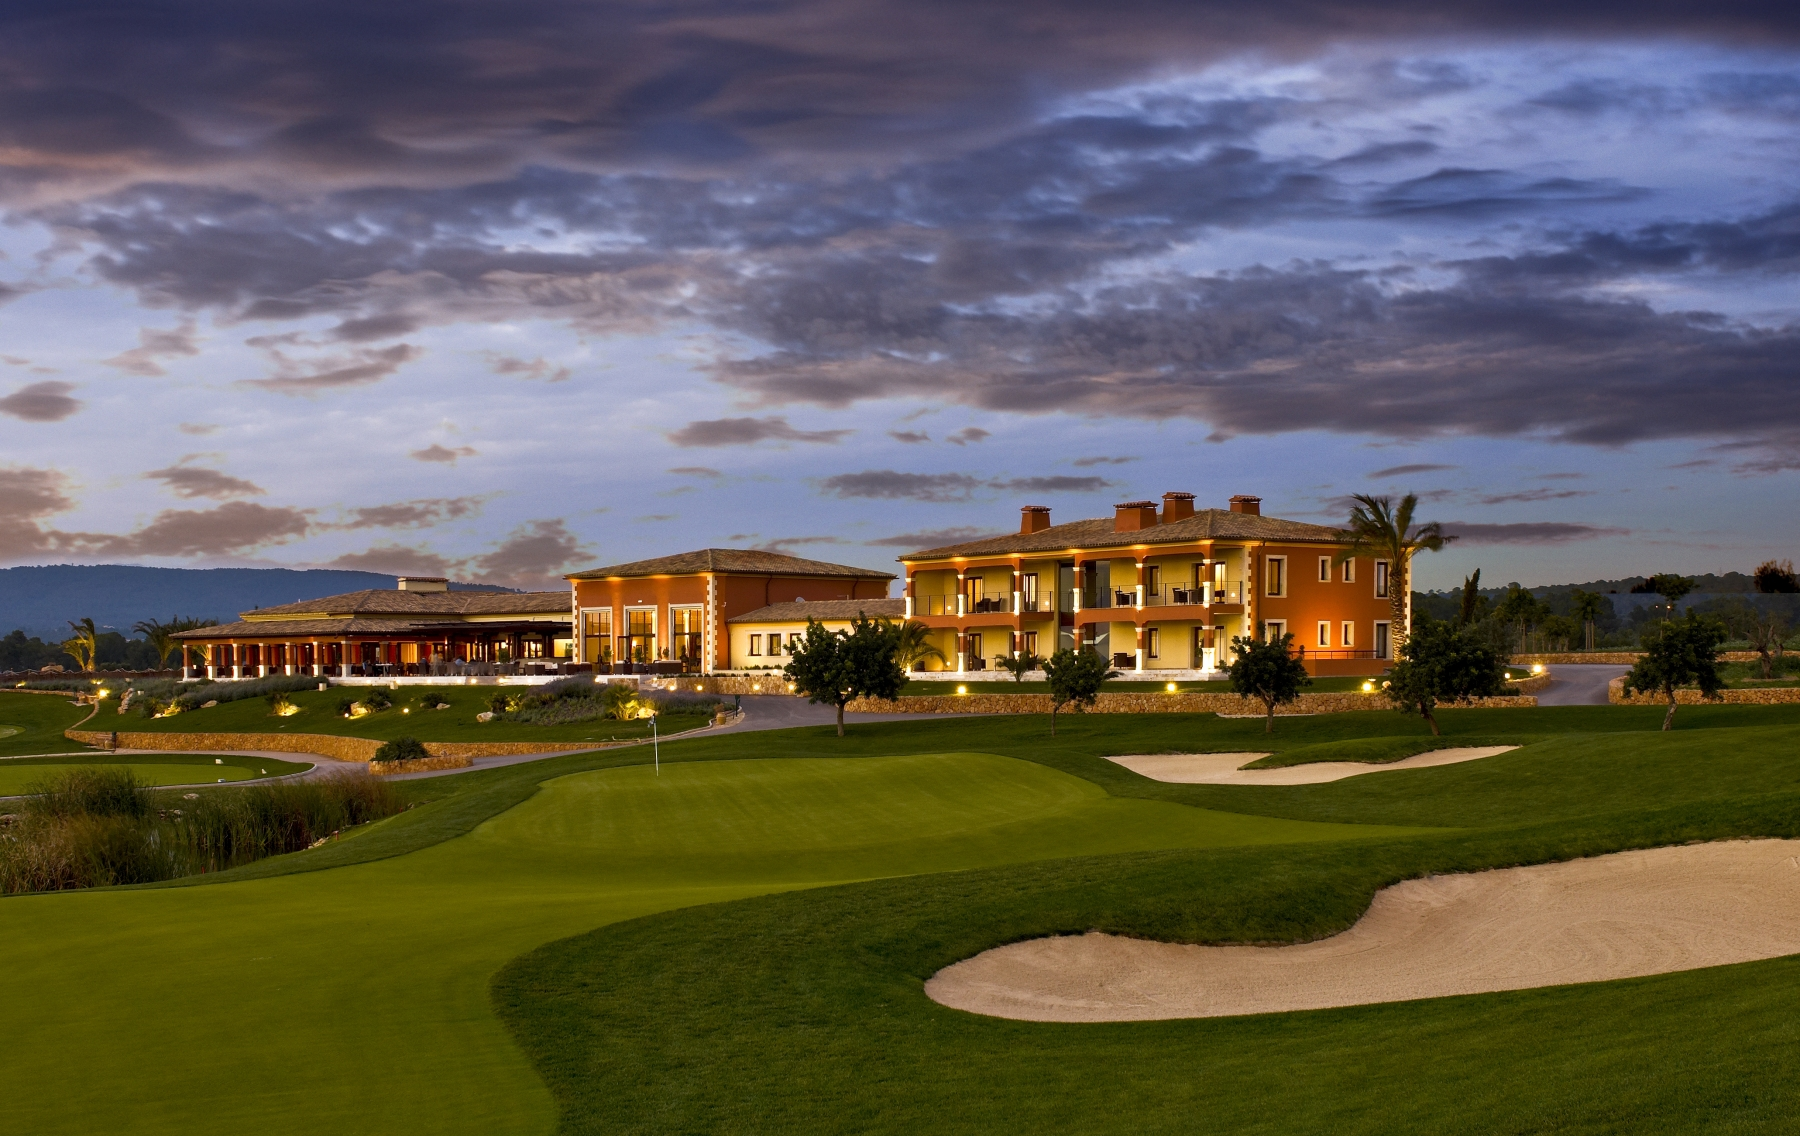 golf-son-gual-mallorca-hole9-clubhouse-high-res